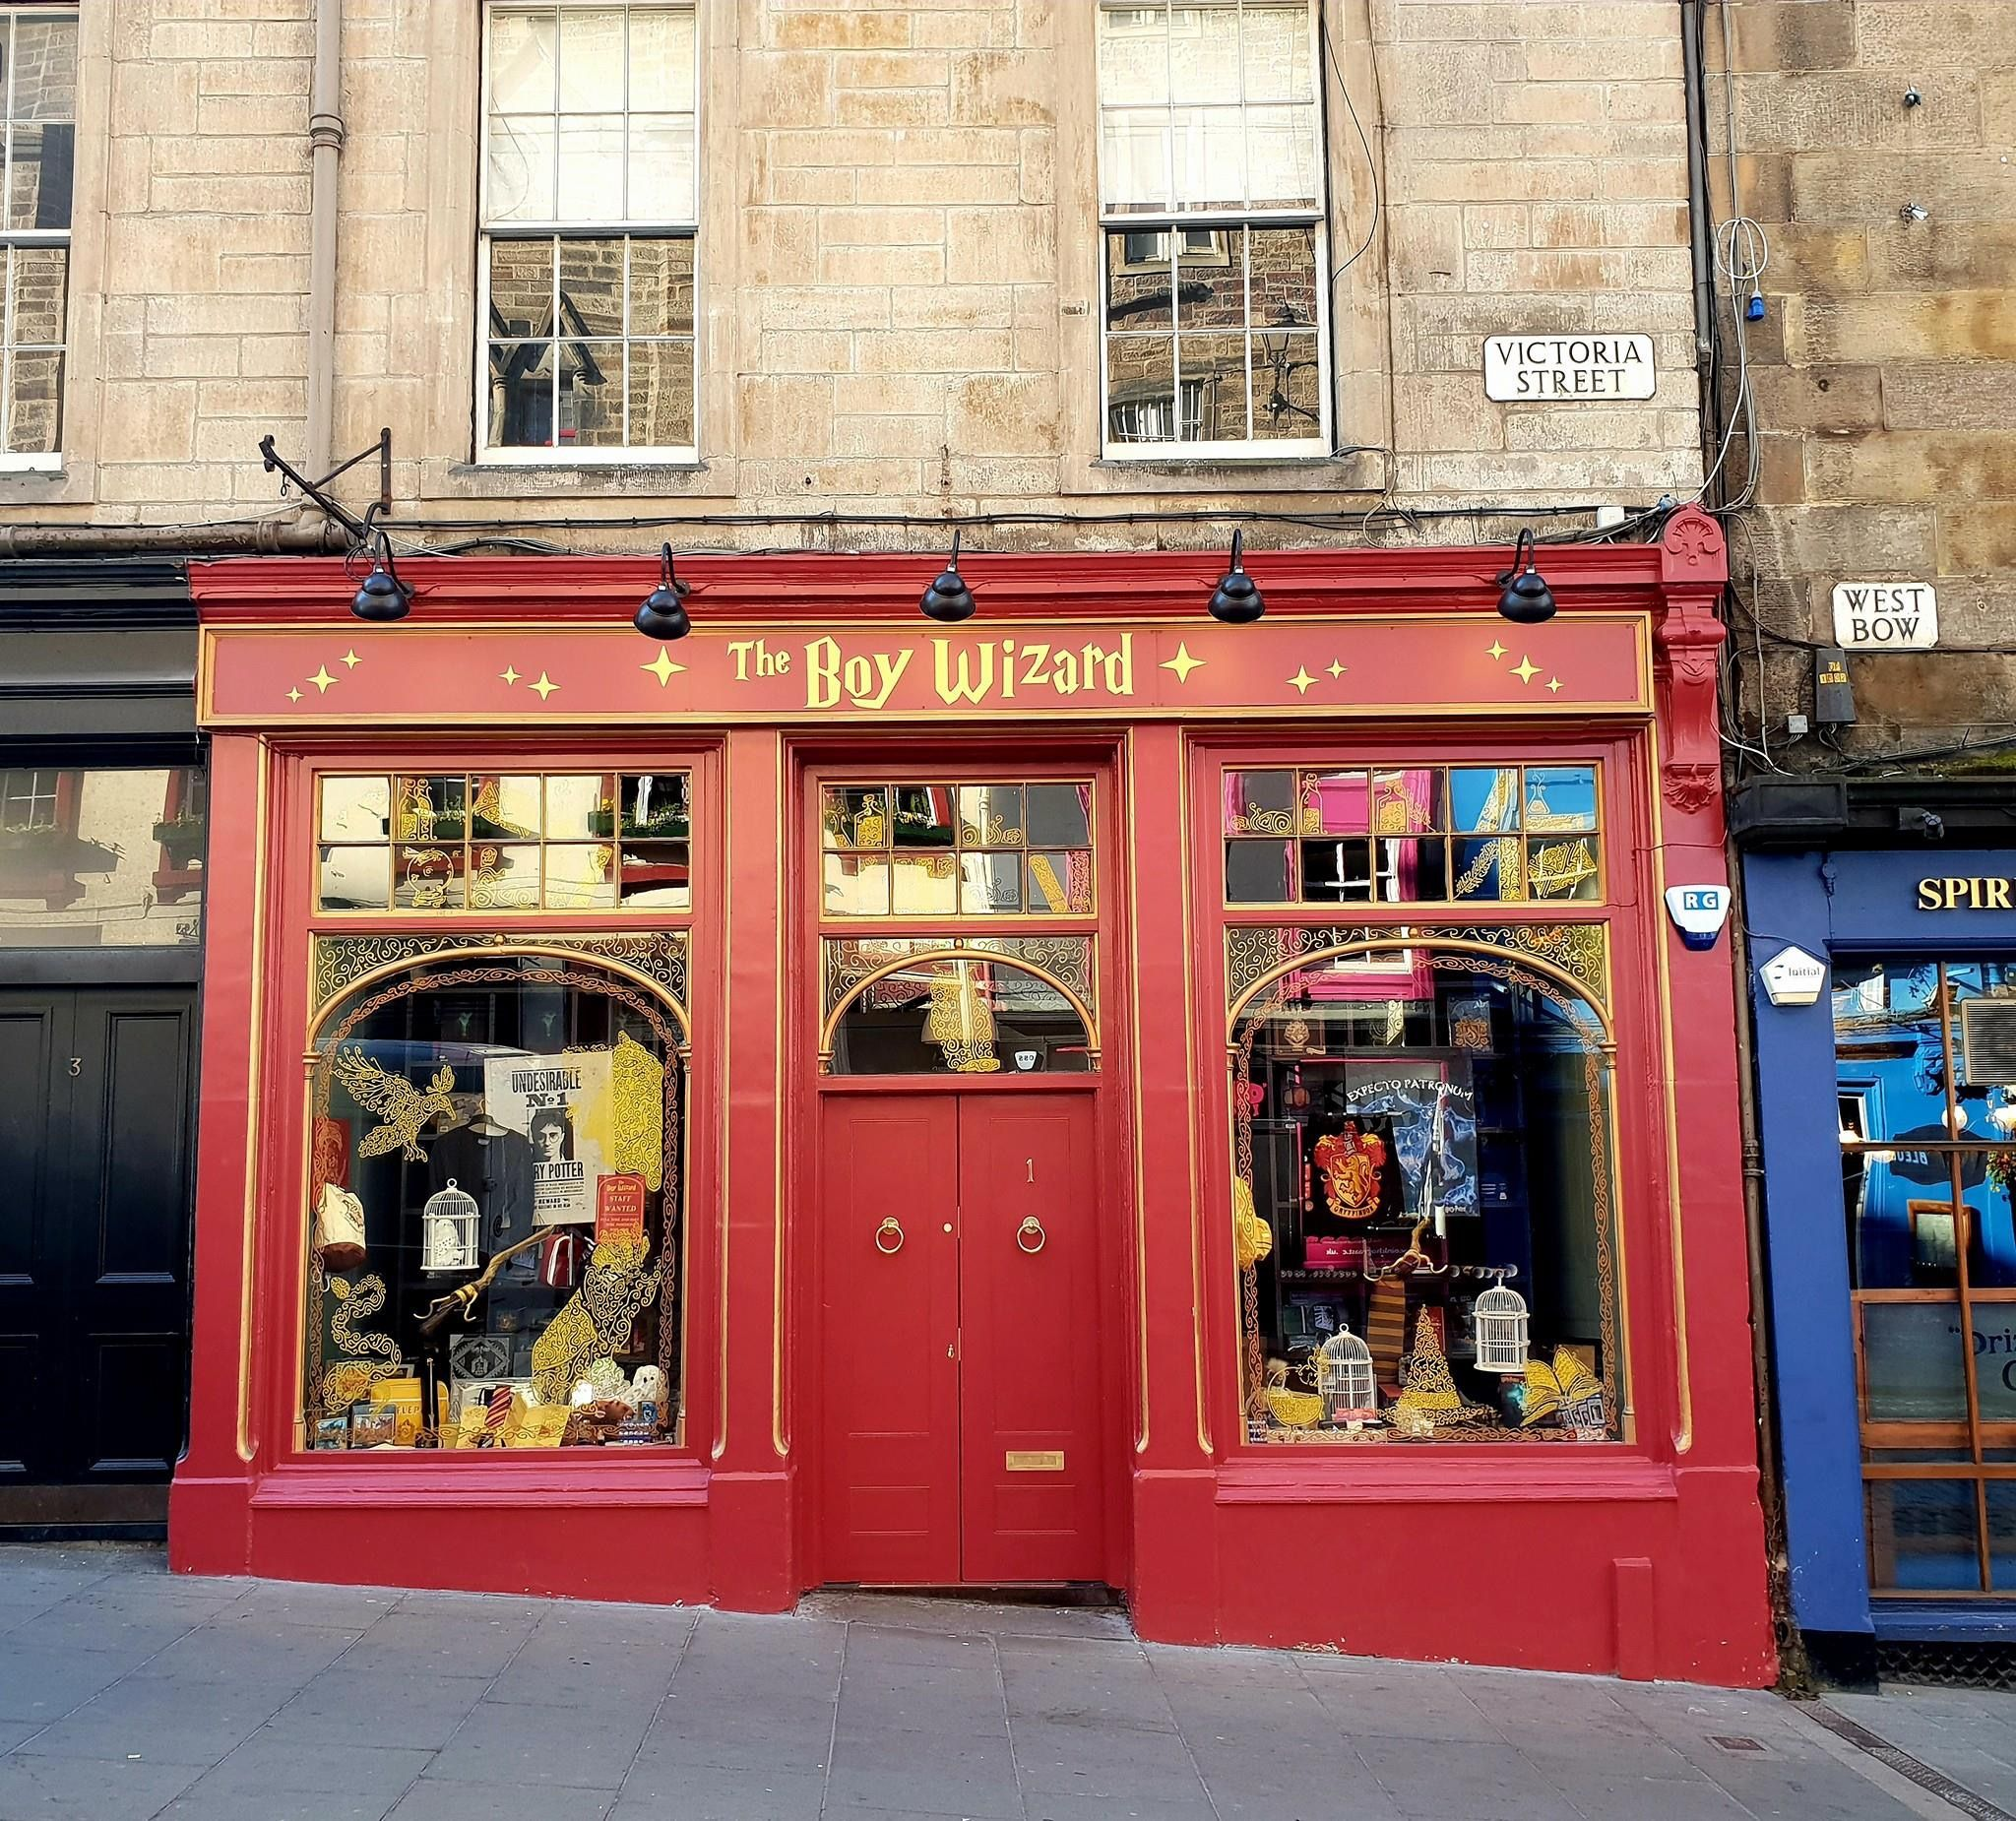 Harry Potter Shop On Victoria St Edinburgh Harry Potter Shop Decor Home Decor